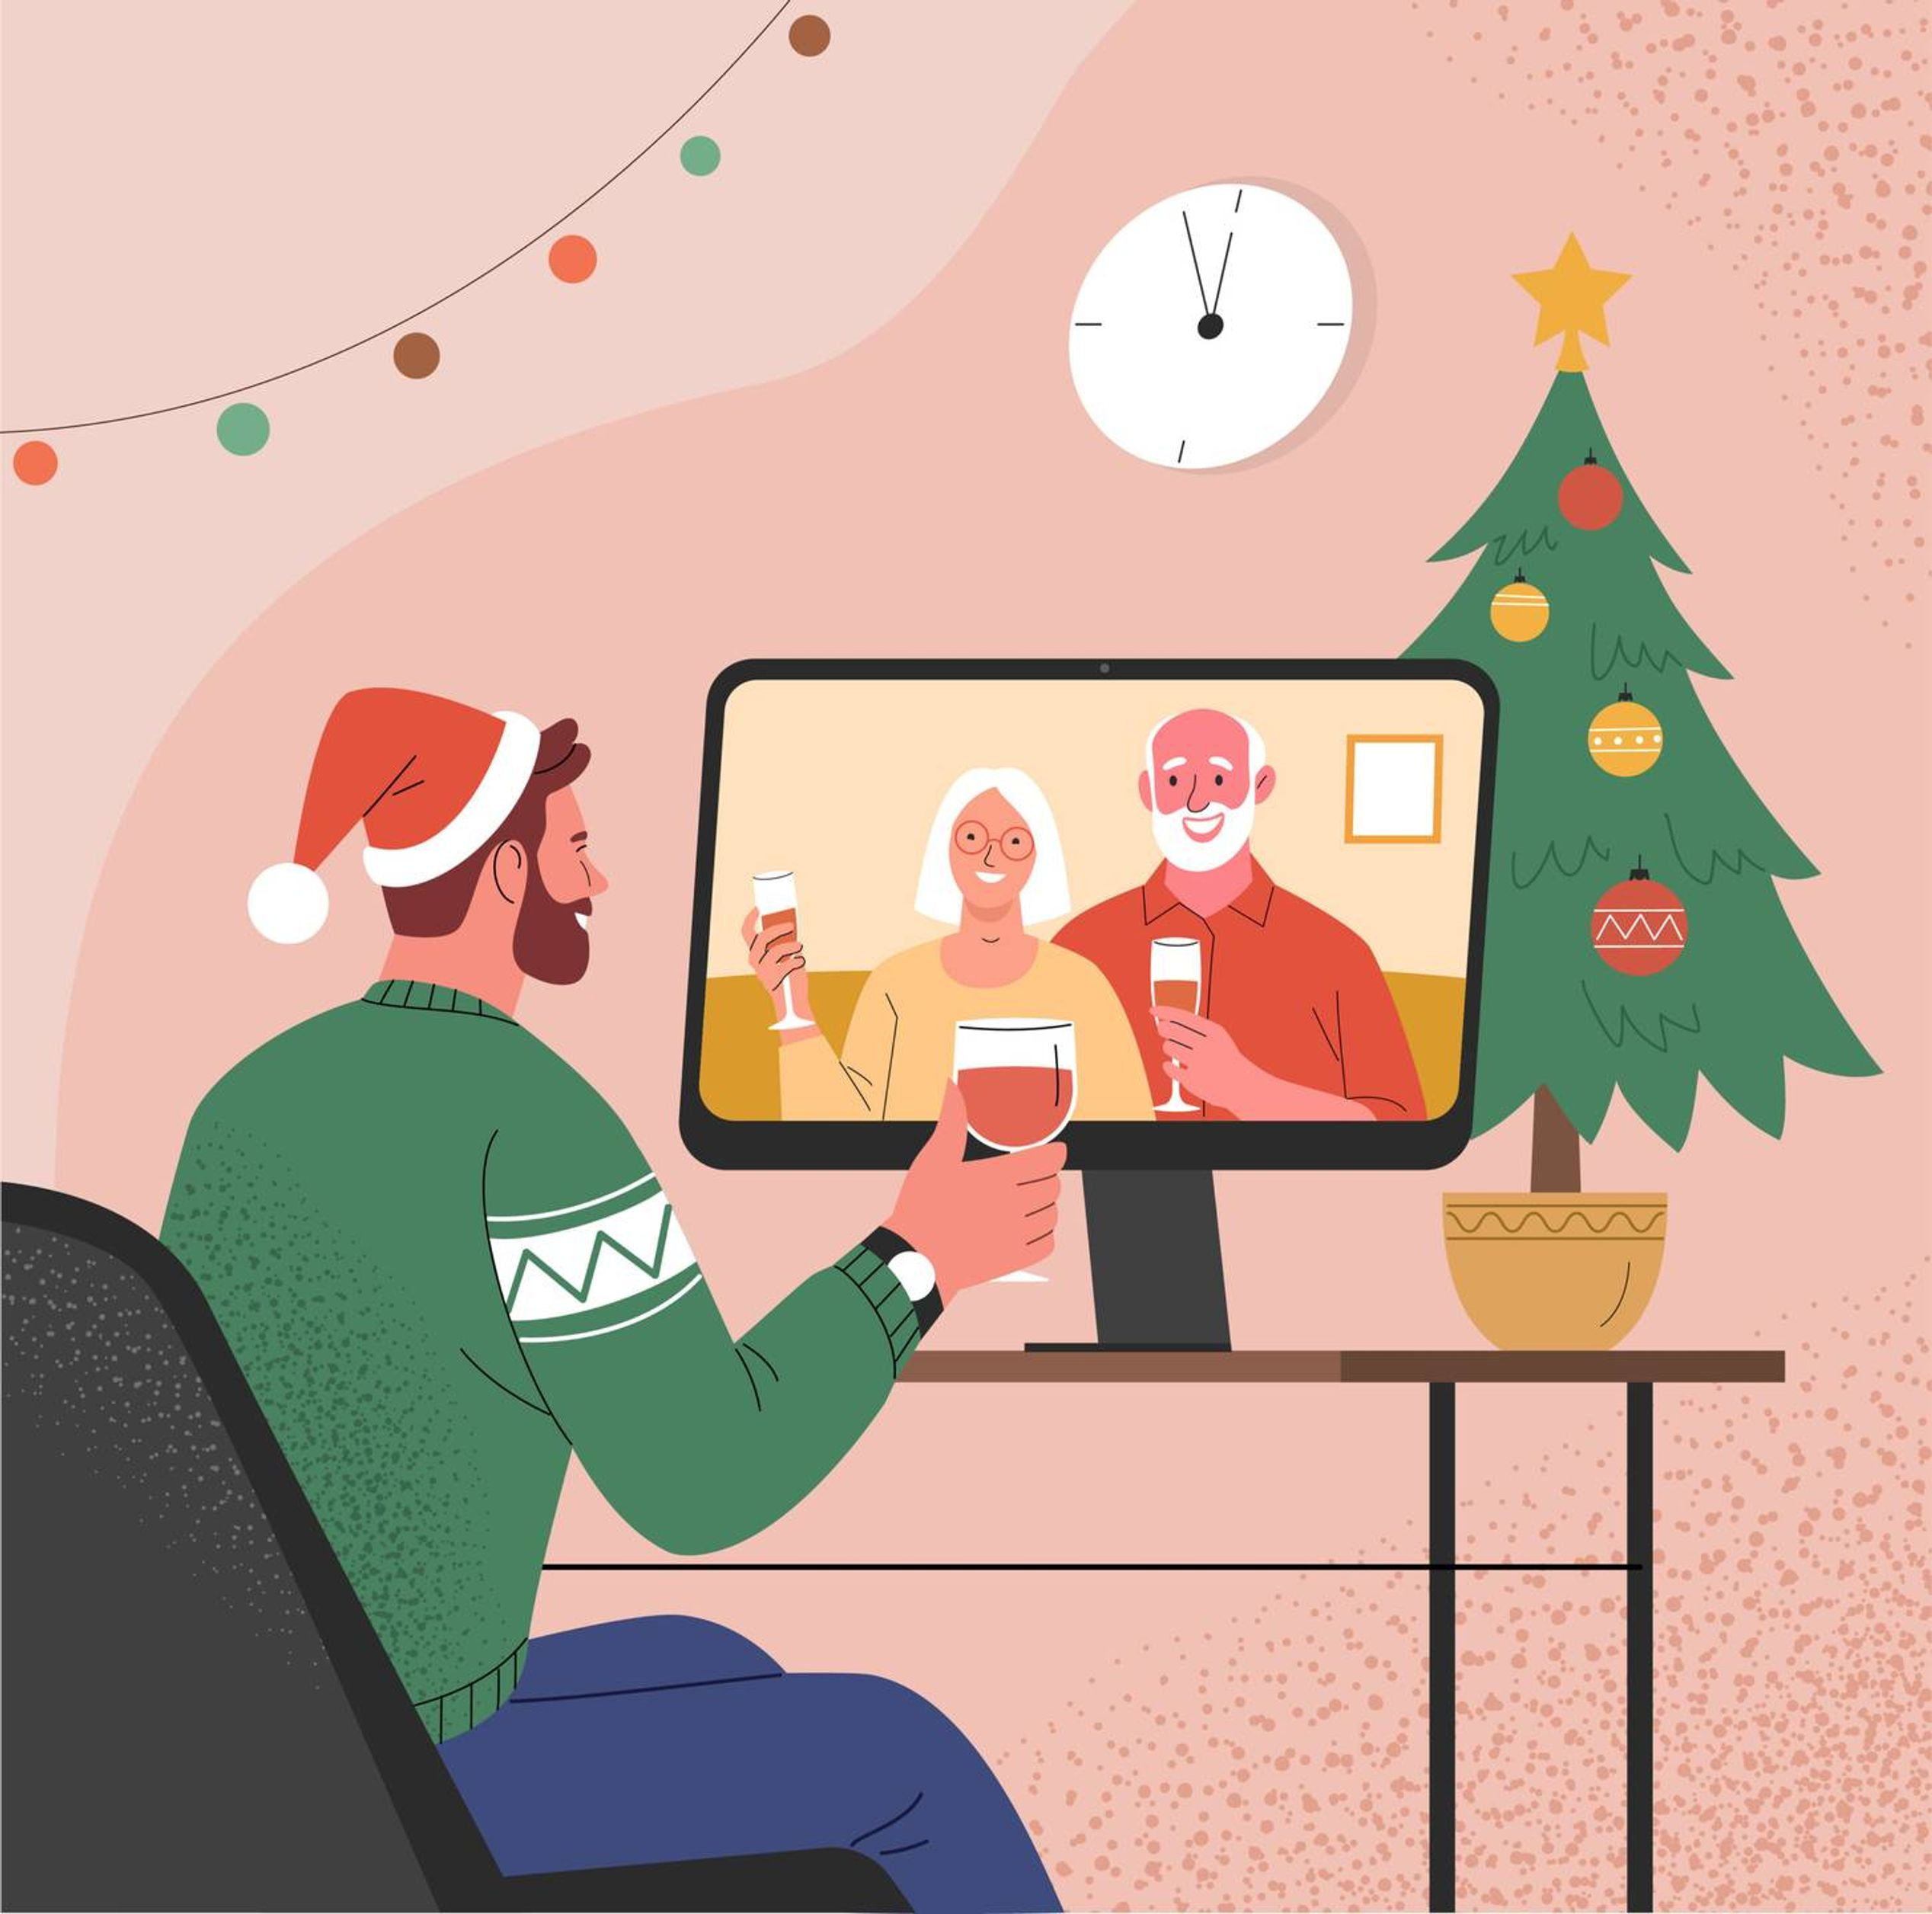 Illustration of virtual Christmas celebration with man talking with parents on computer, surrounded by Christmas decorations, holiday, rewire